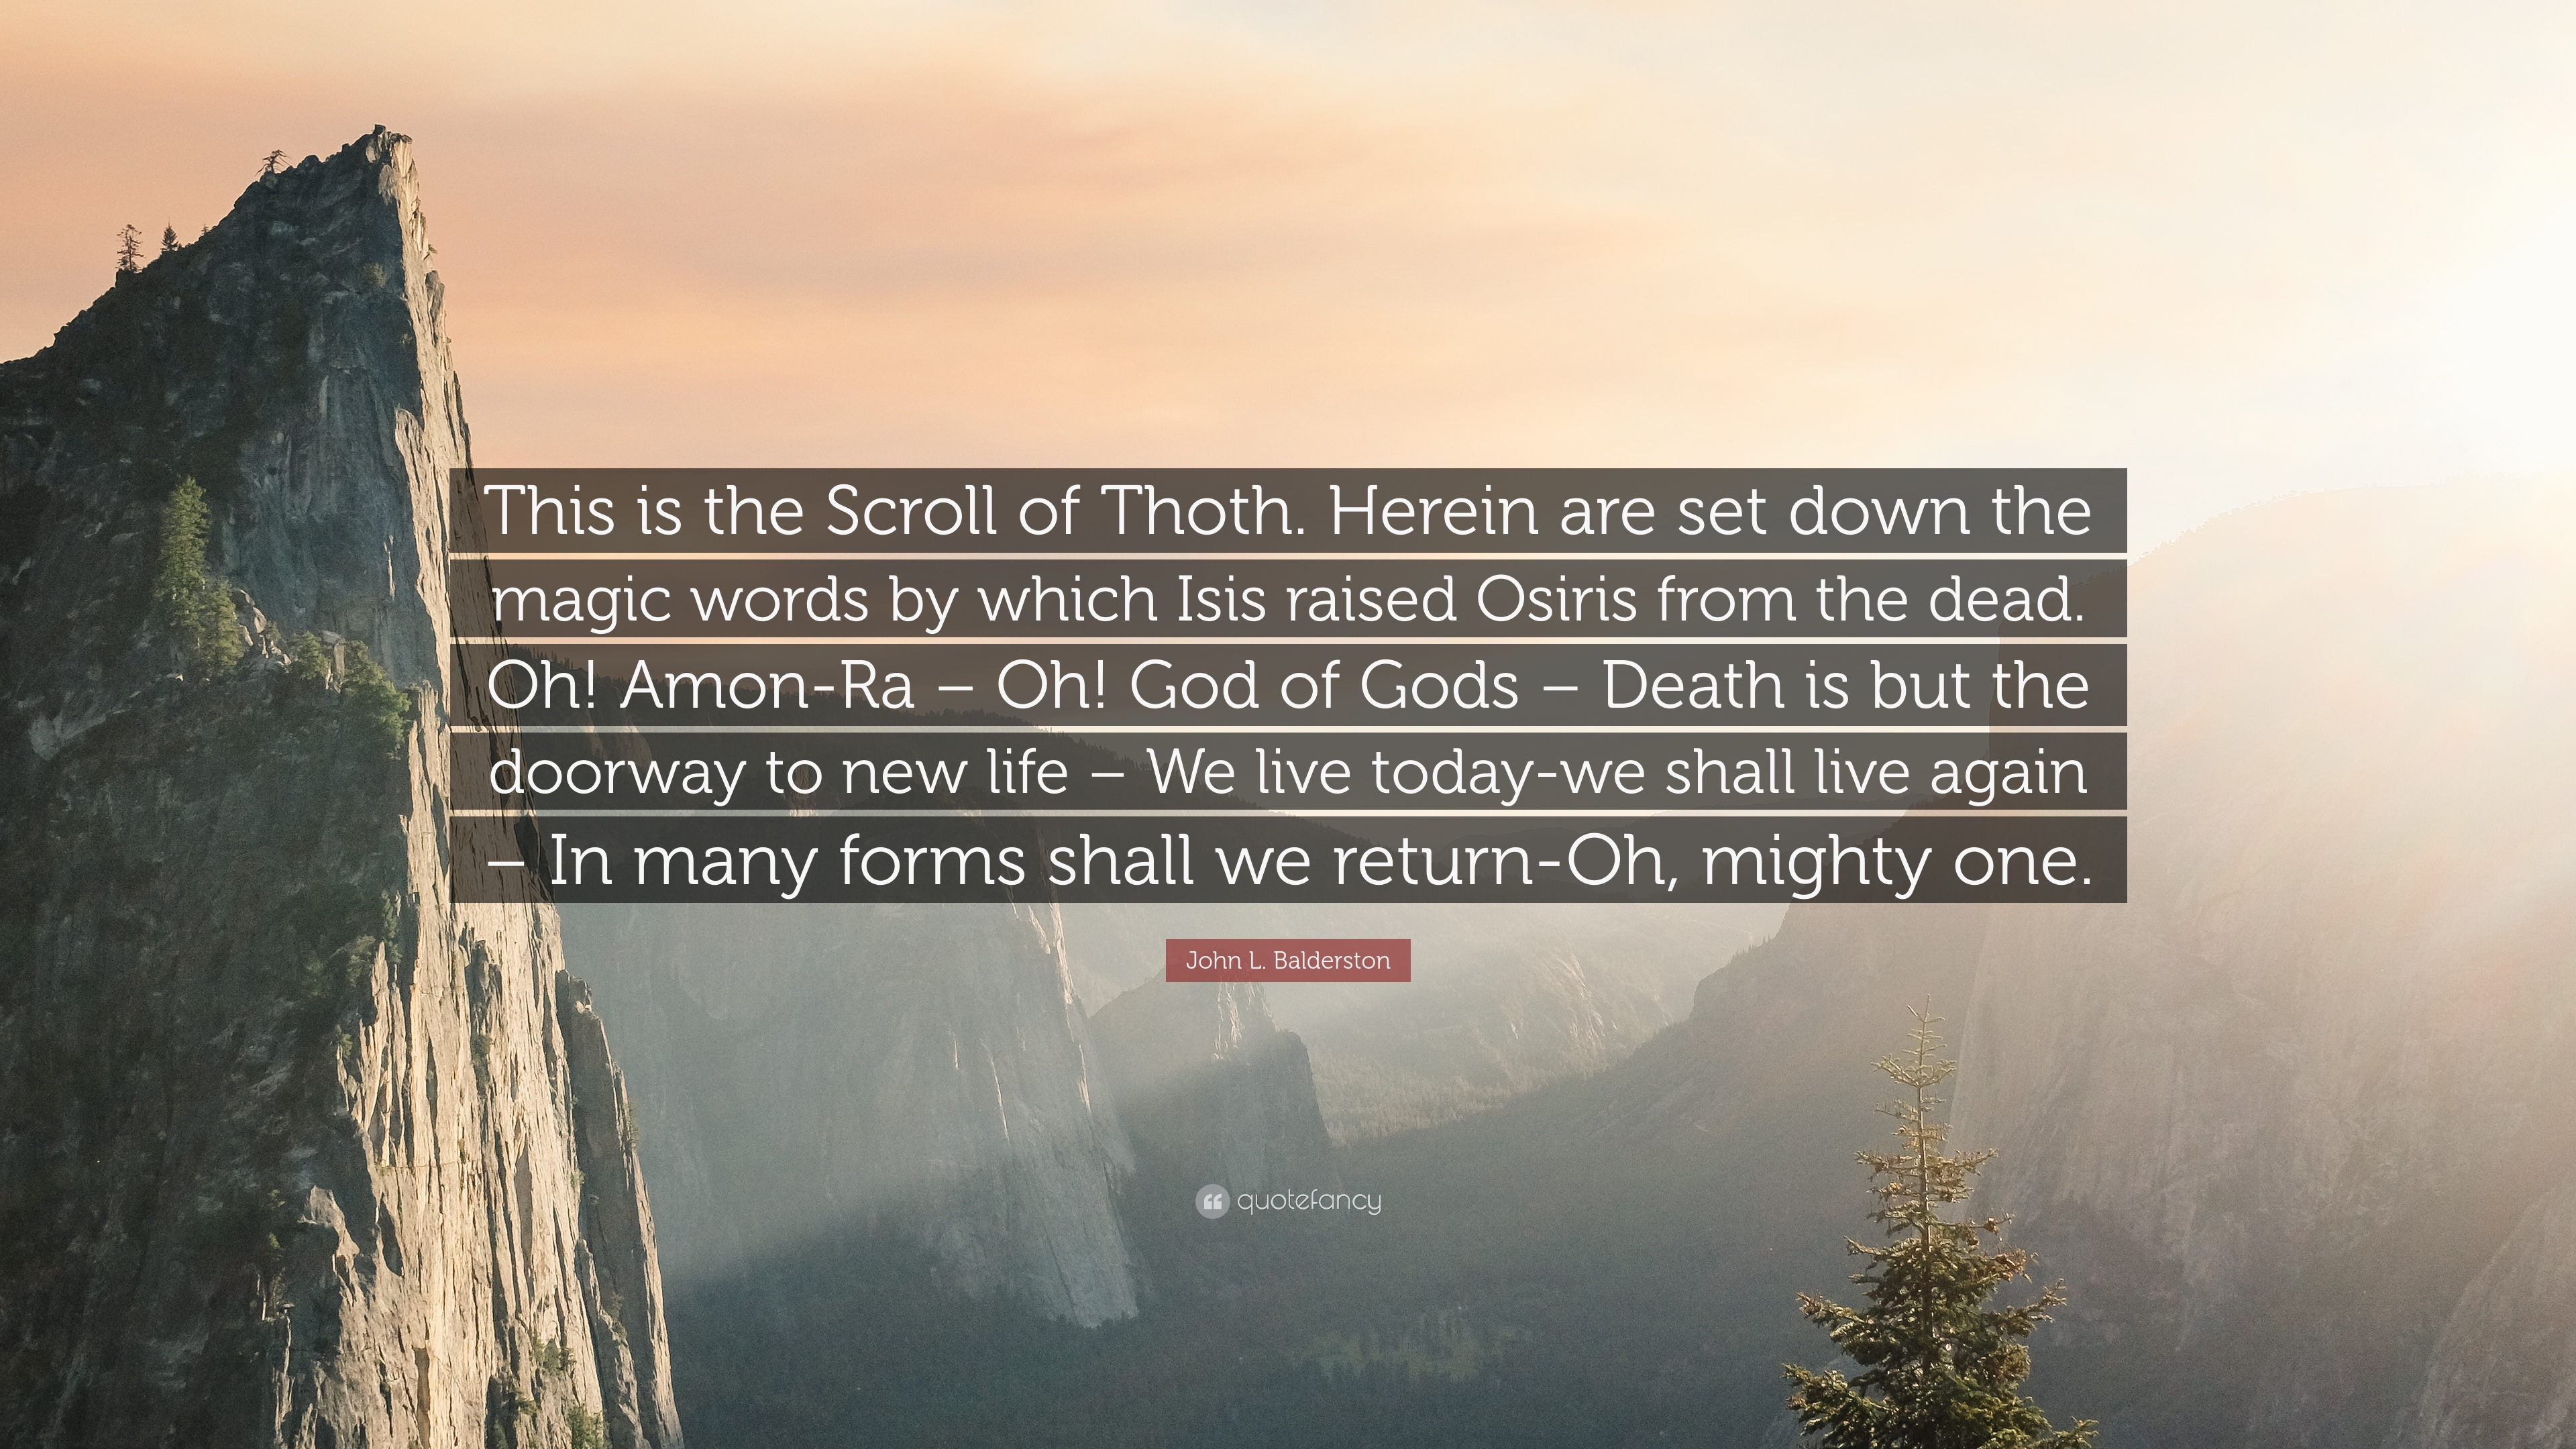 John l balderston quote this is the scroll of thoth herein are john l balderston quote this is the scroll of thoth herein are altavistaventures Images